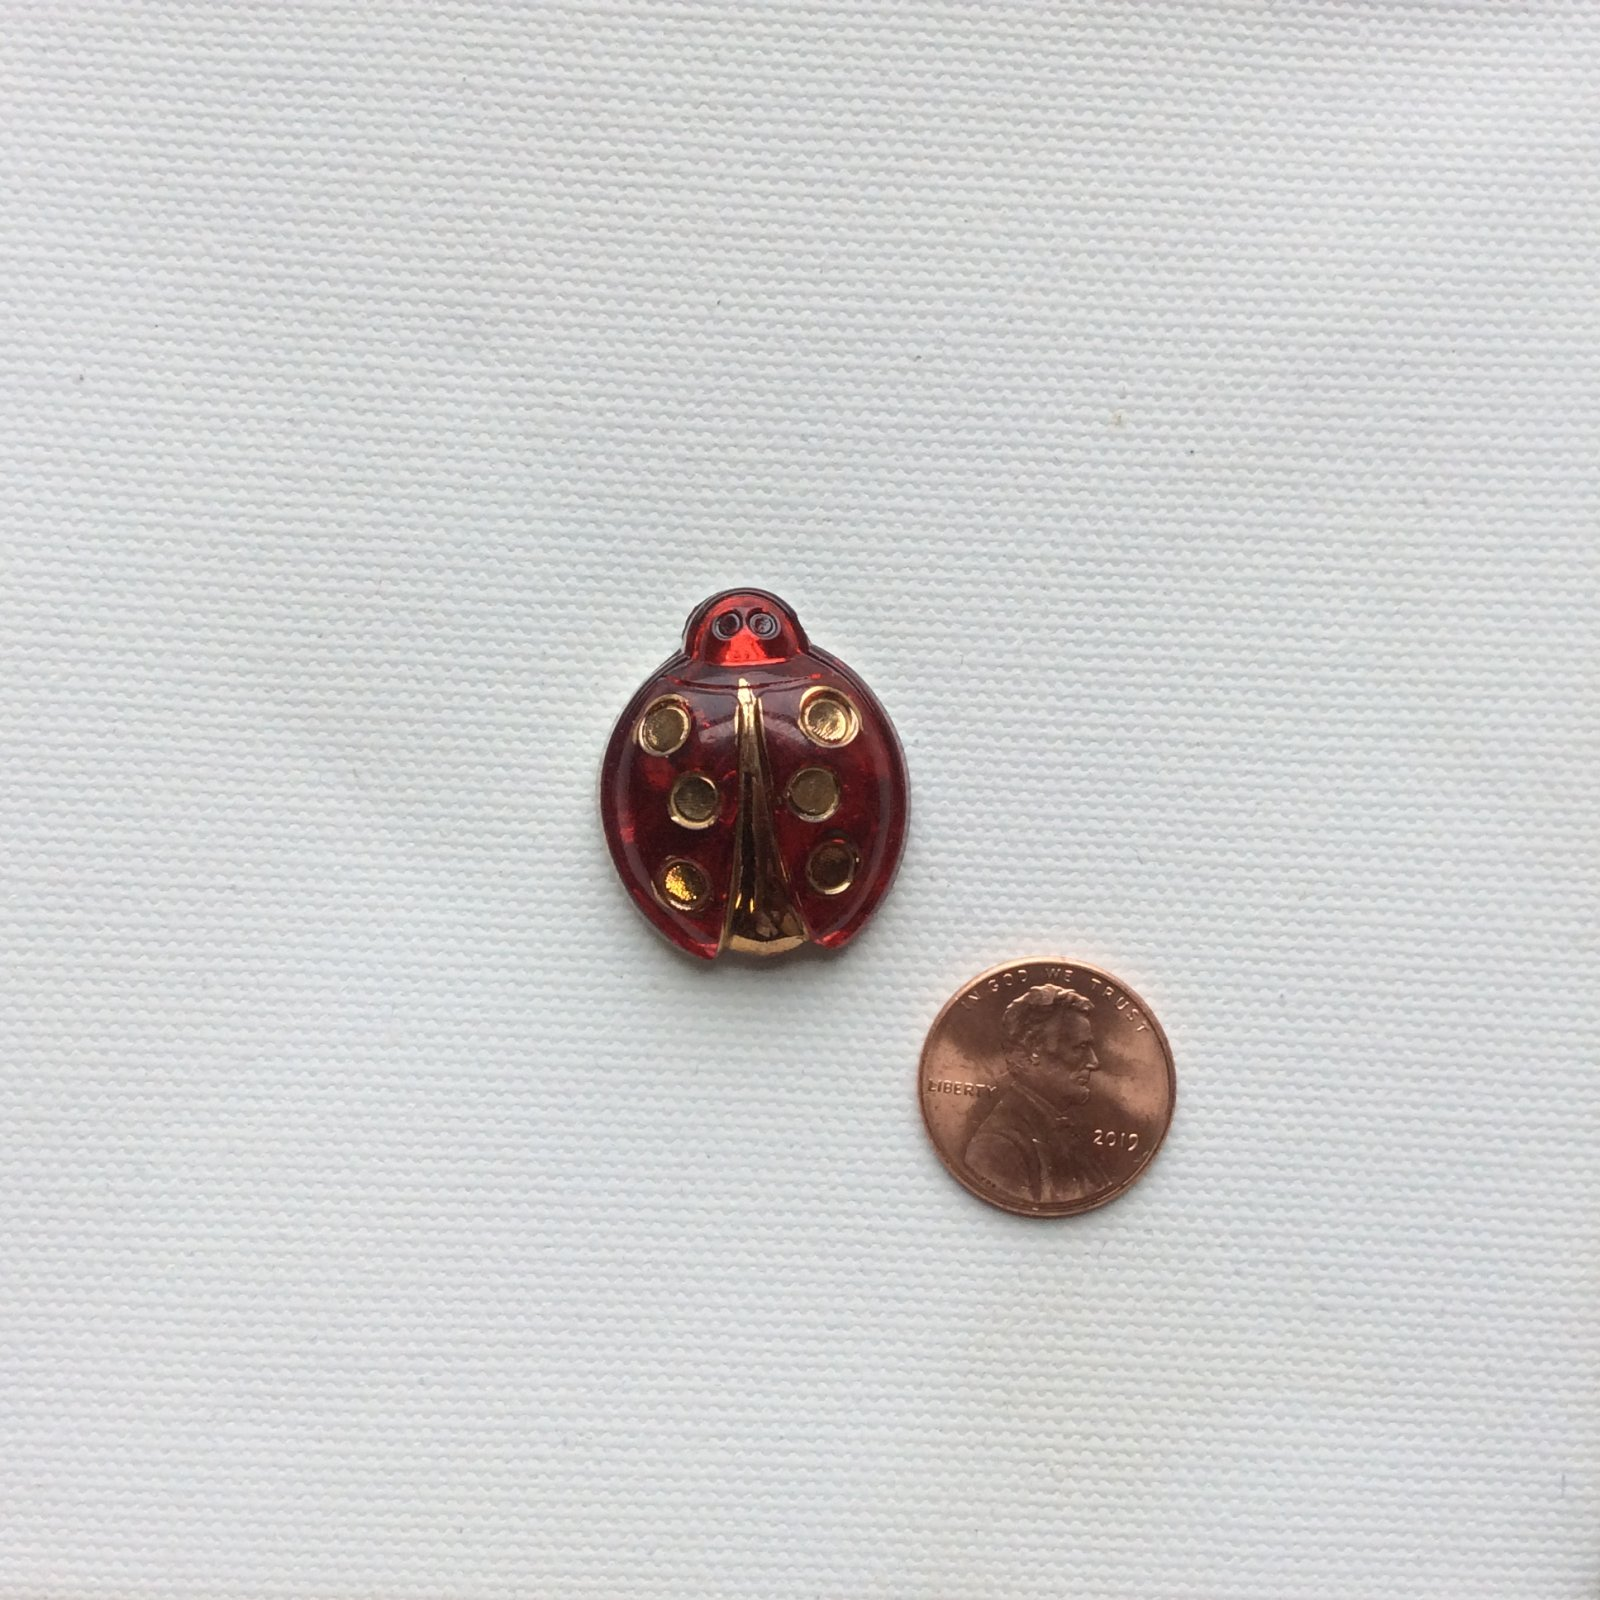 Vintage Ladybug Clear Red and Metallic Bohemian Glass Button BUTTON195B